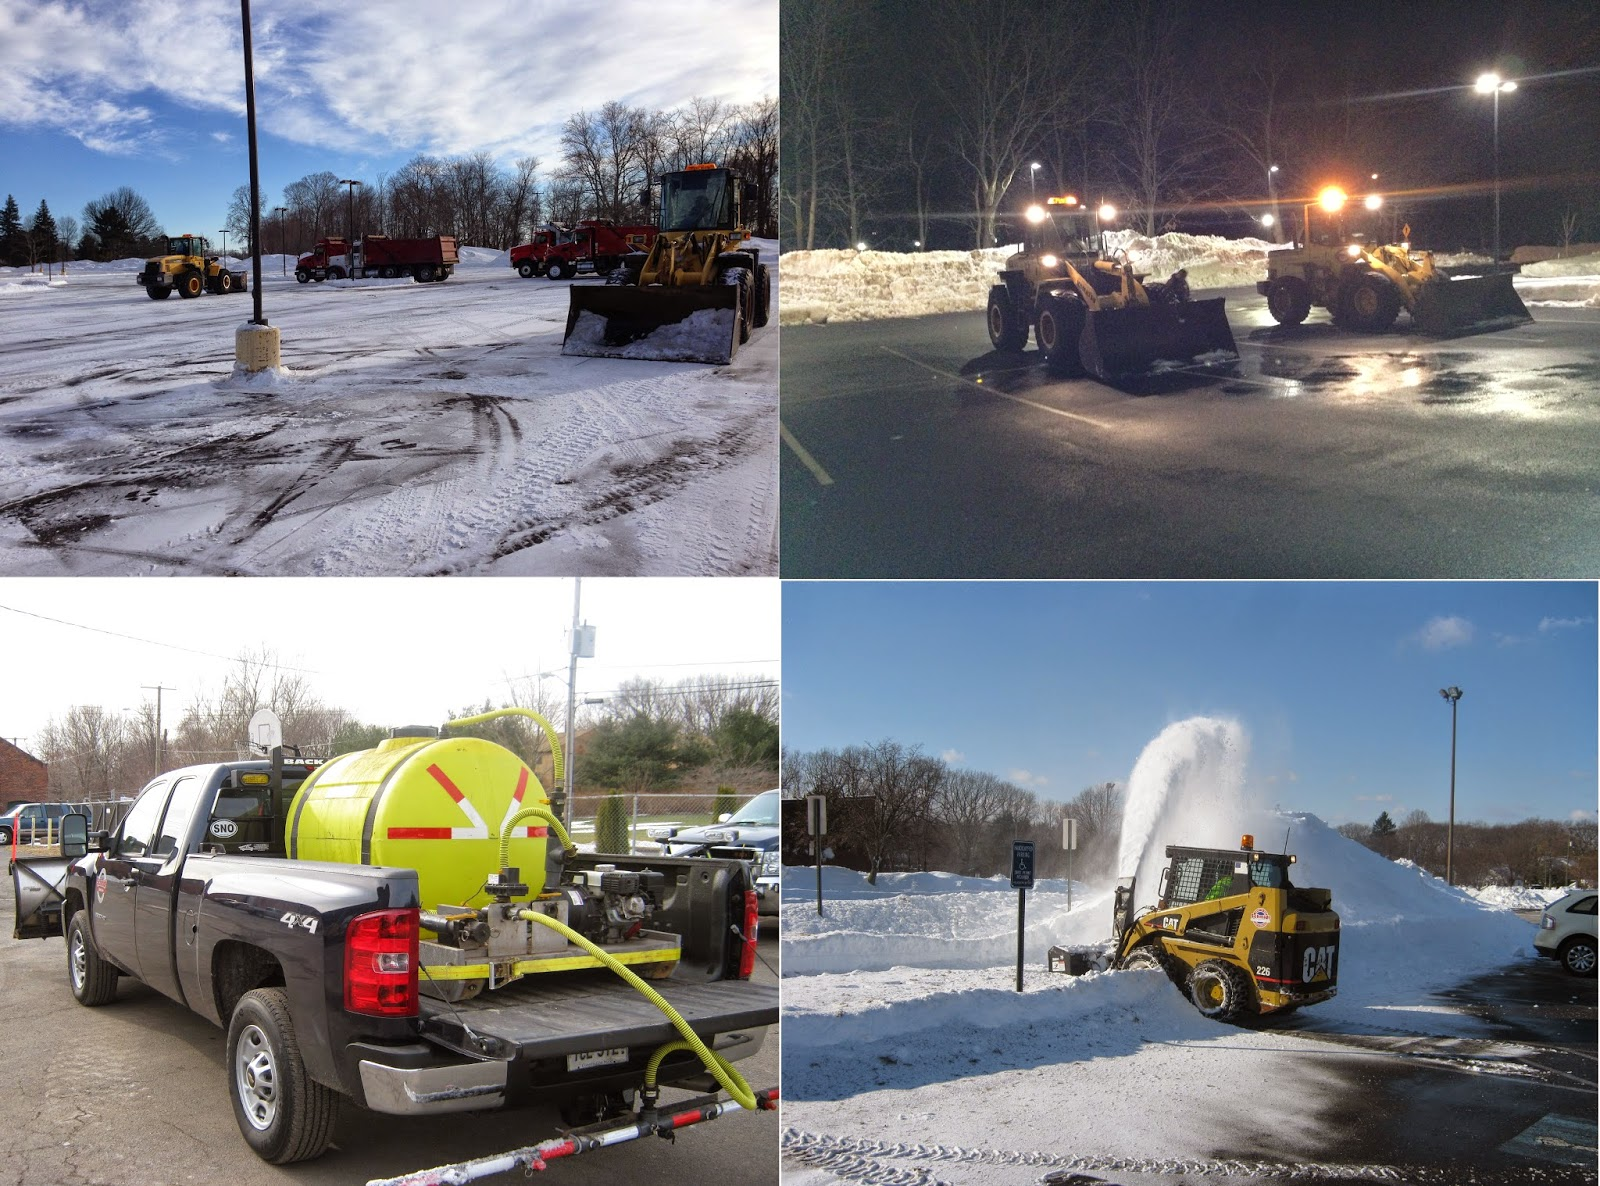 Snow removal CT Snow Ice Removal CT Snow Ice Management CT Snow Service CT Sand Salt Ice Melt CT Commercial Business Snow Contractors CONN Connecticut